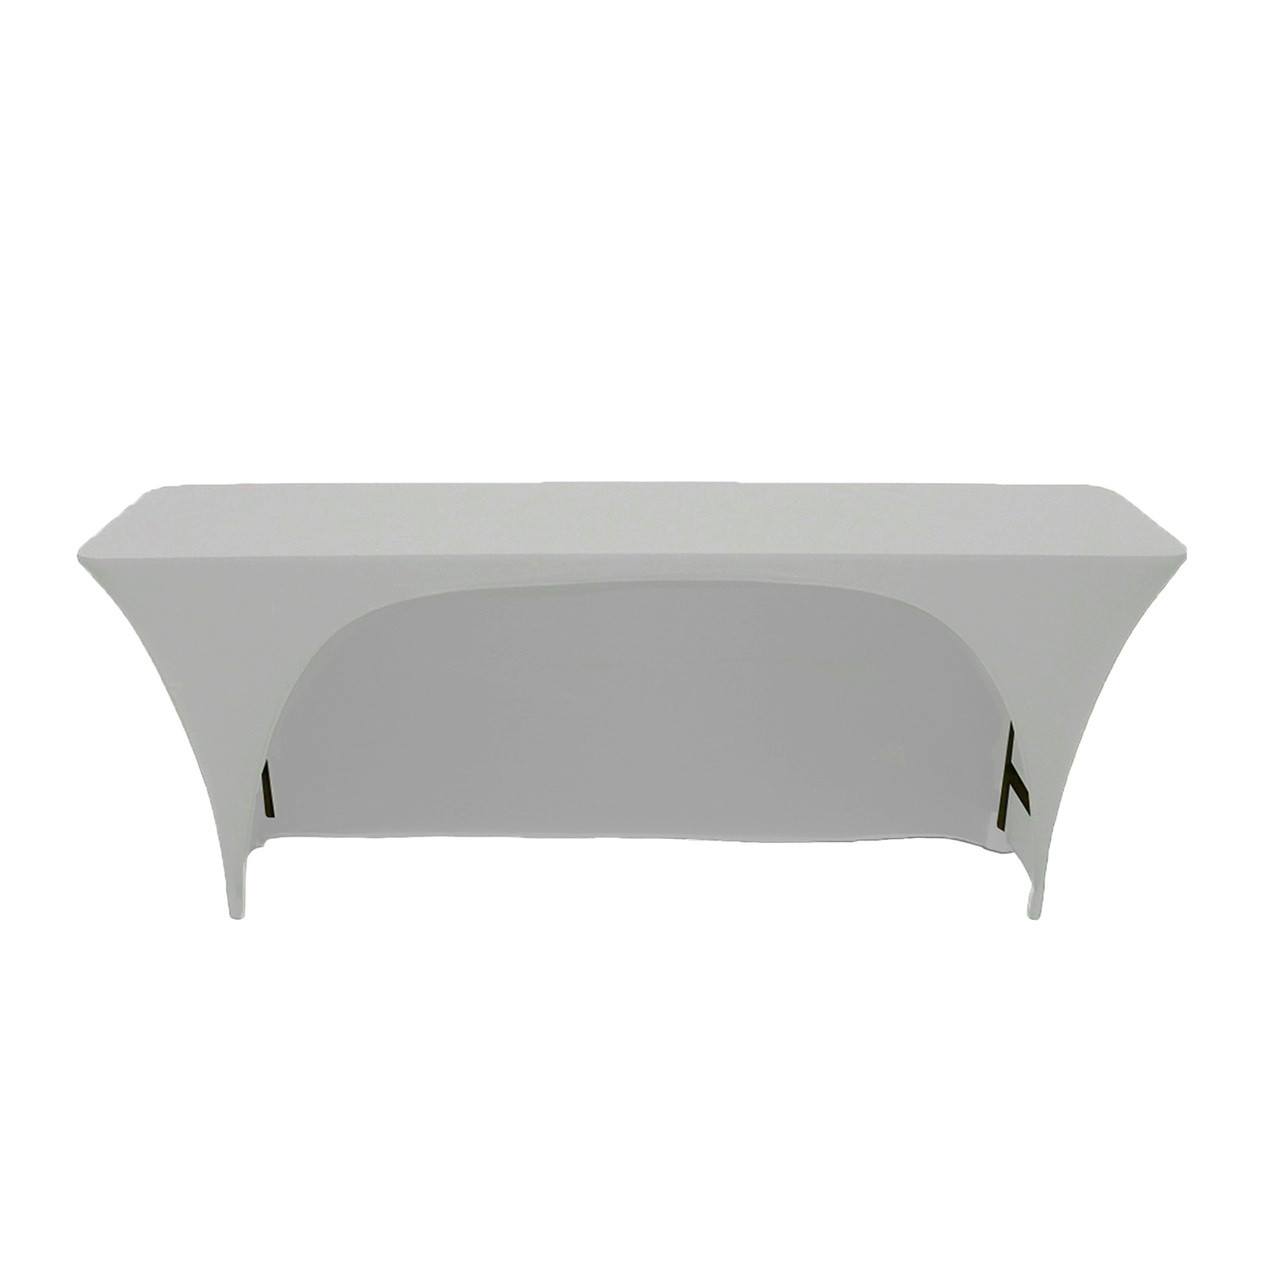 225 & Spandex 6 Ft x 18 Inches Open Back Rectangular Table Cover Silver